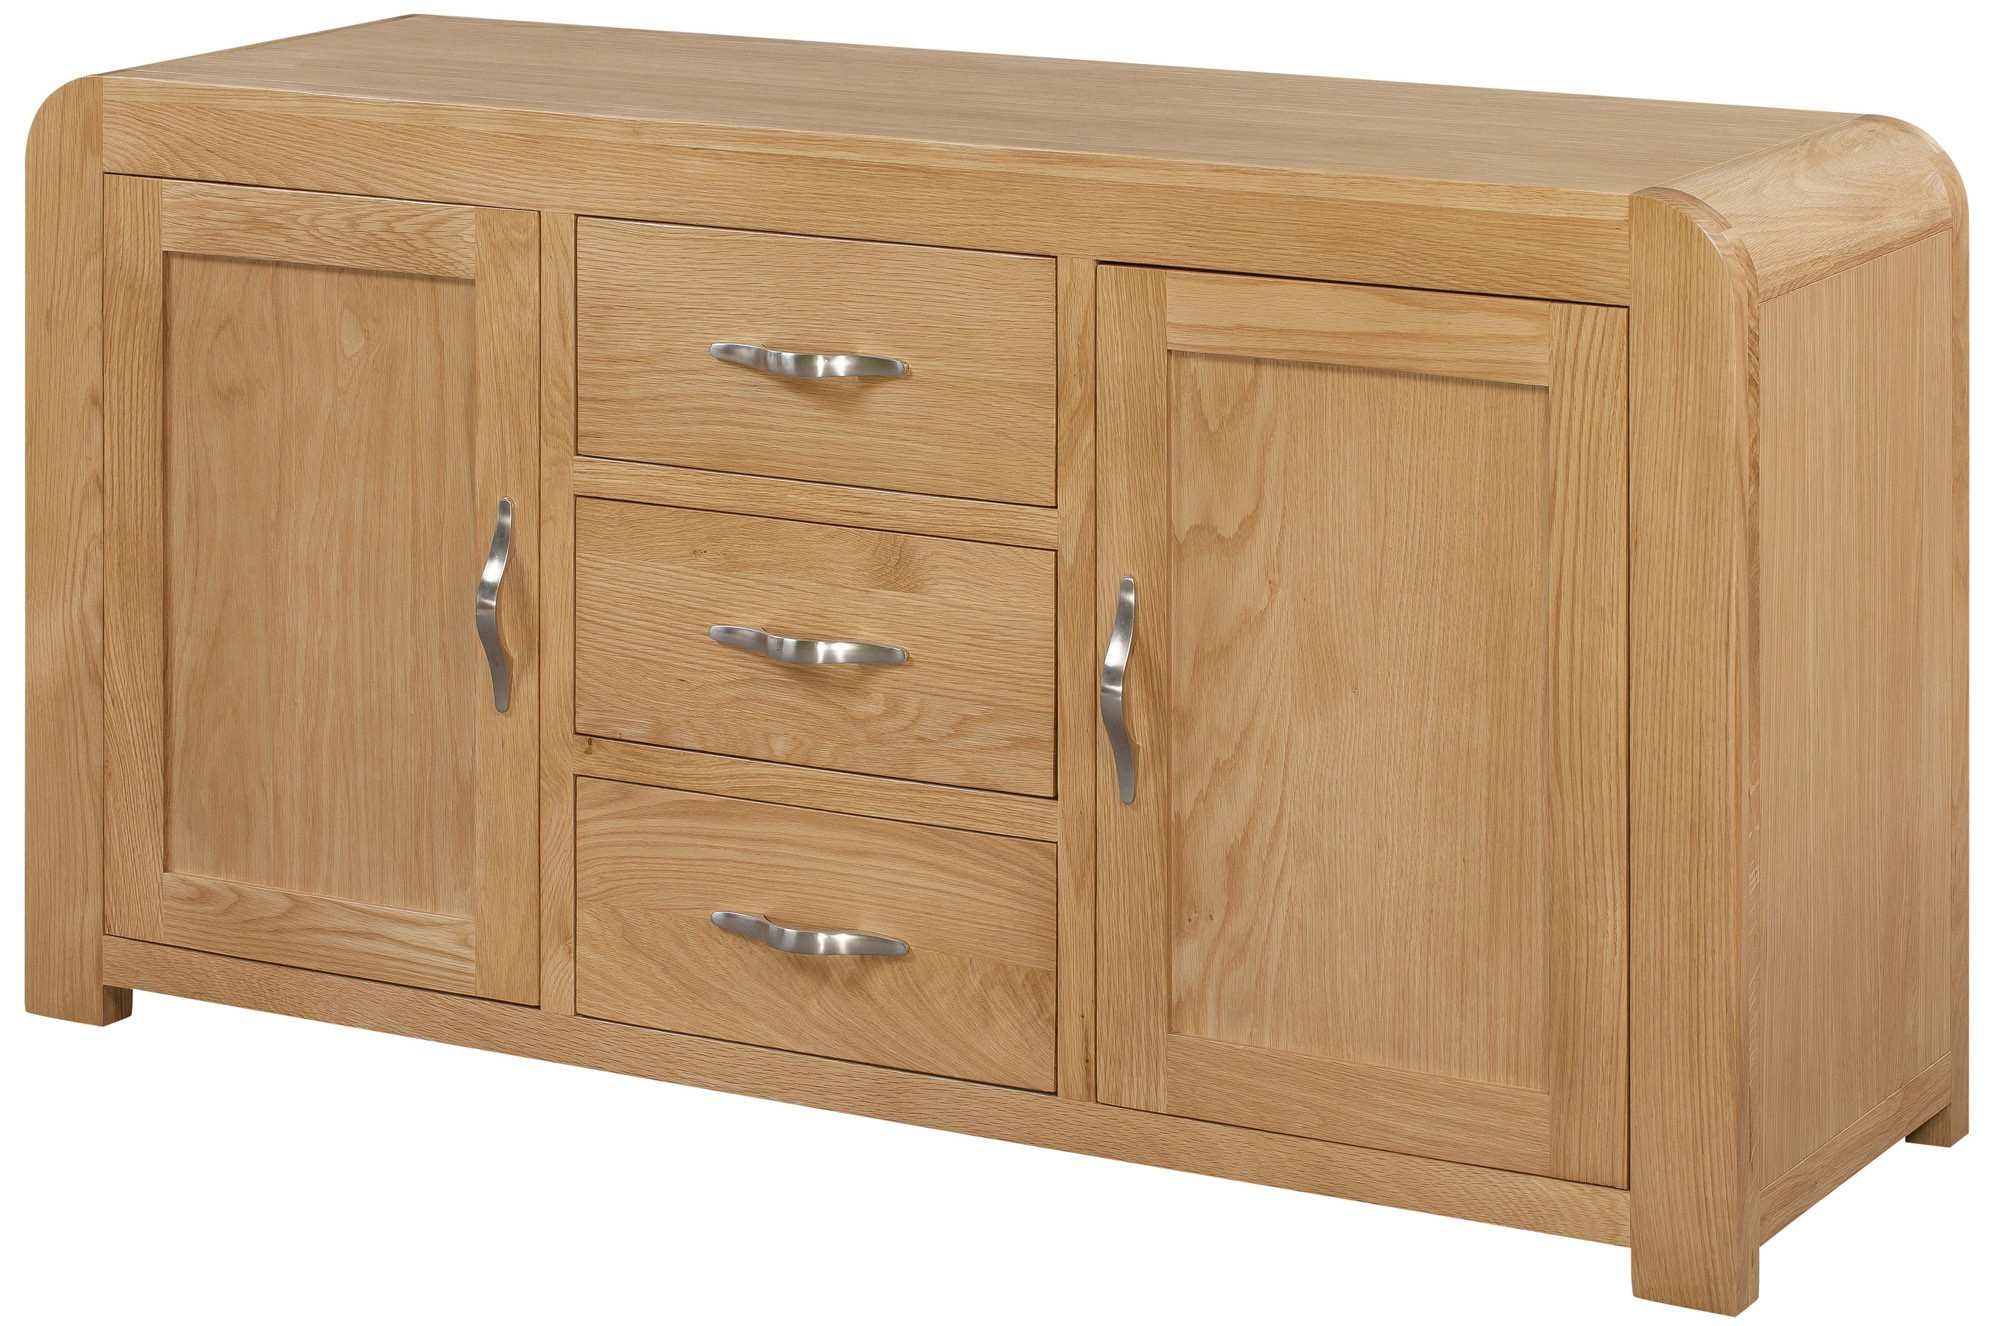 Venice Sideboard With 2 Doors & 3 Drawers – Venice Oak Range With Regard To Norton Sideboards (View 19 of 20)